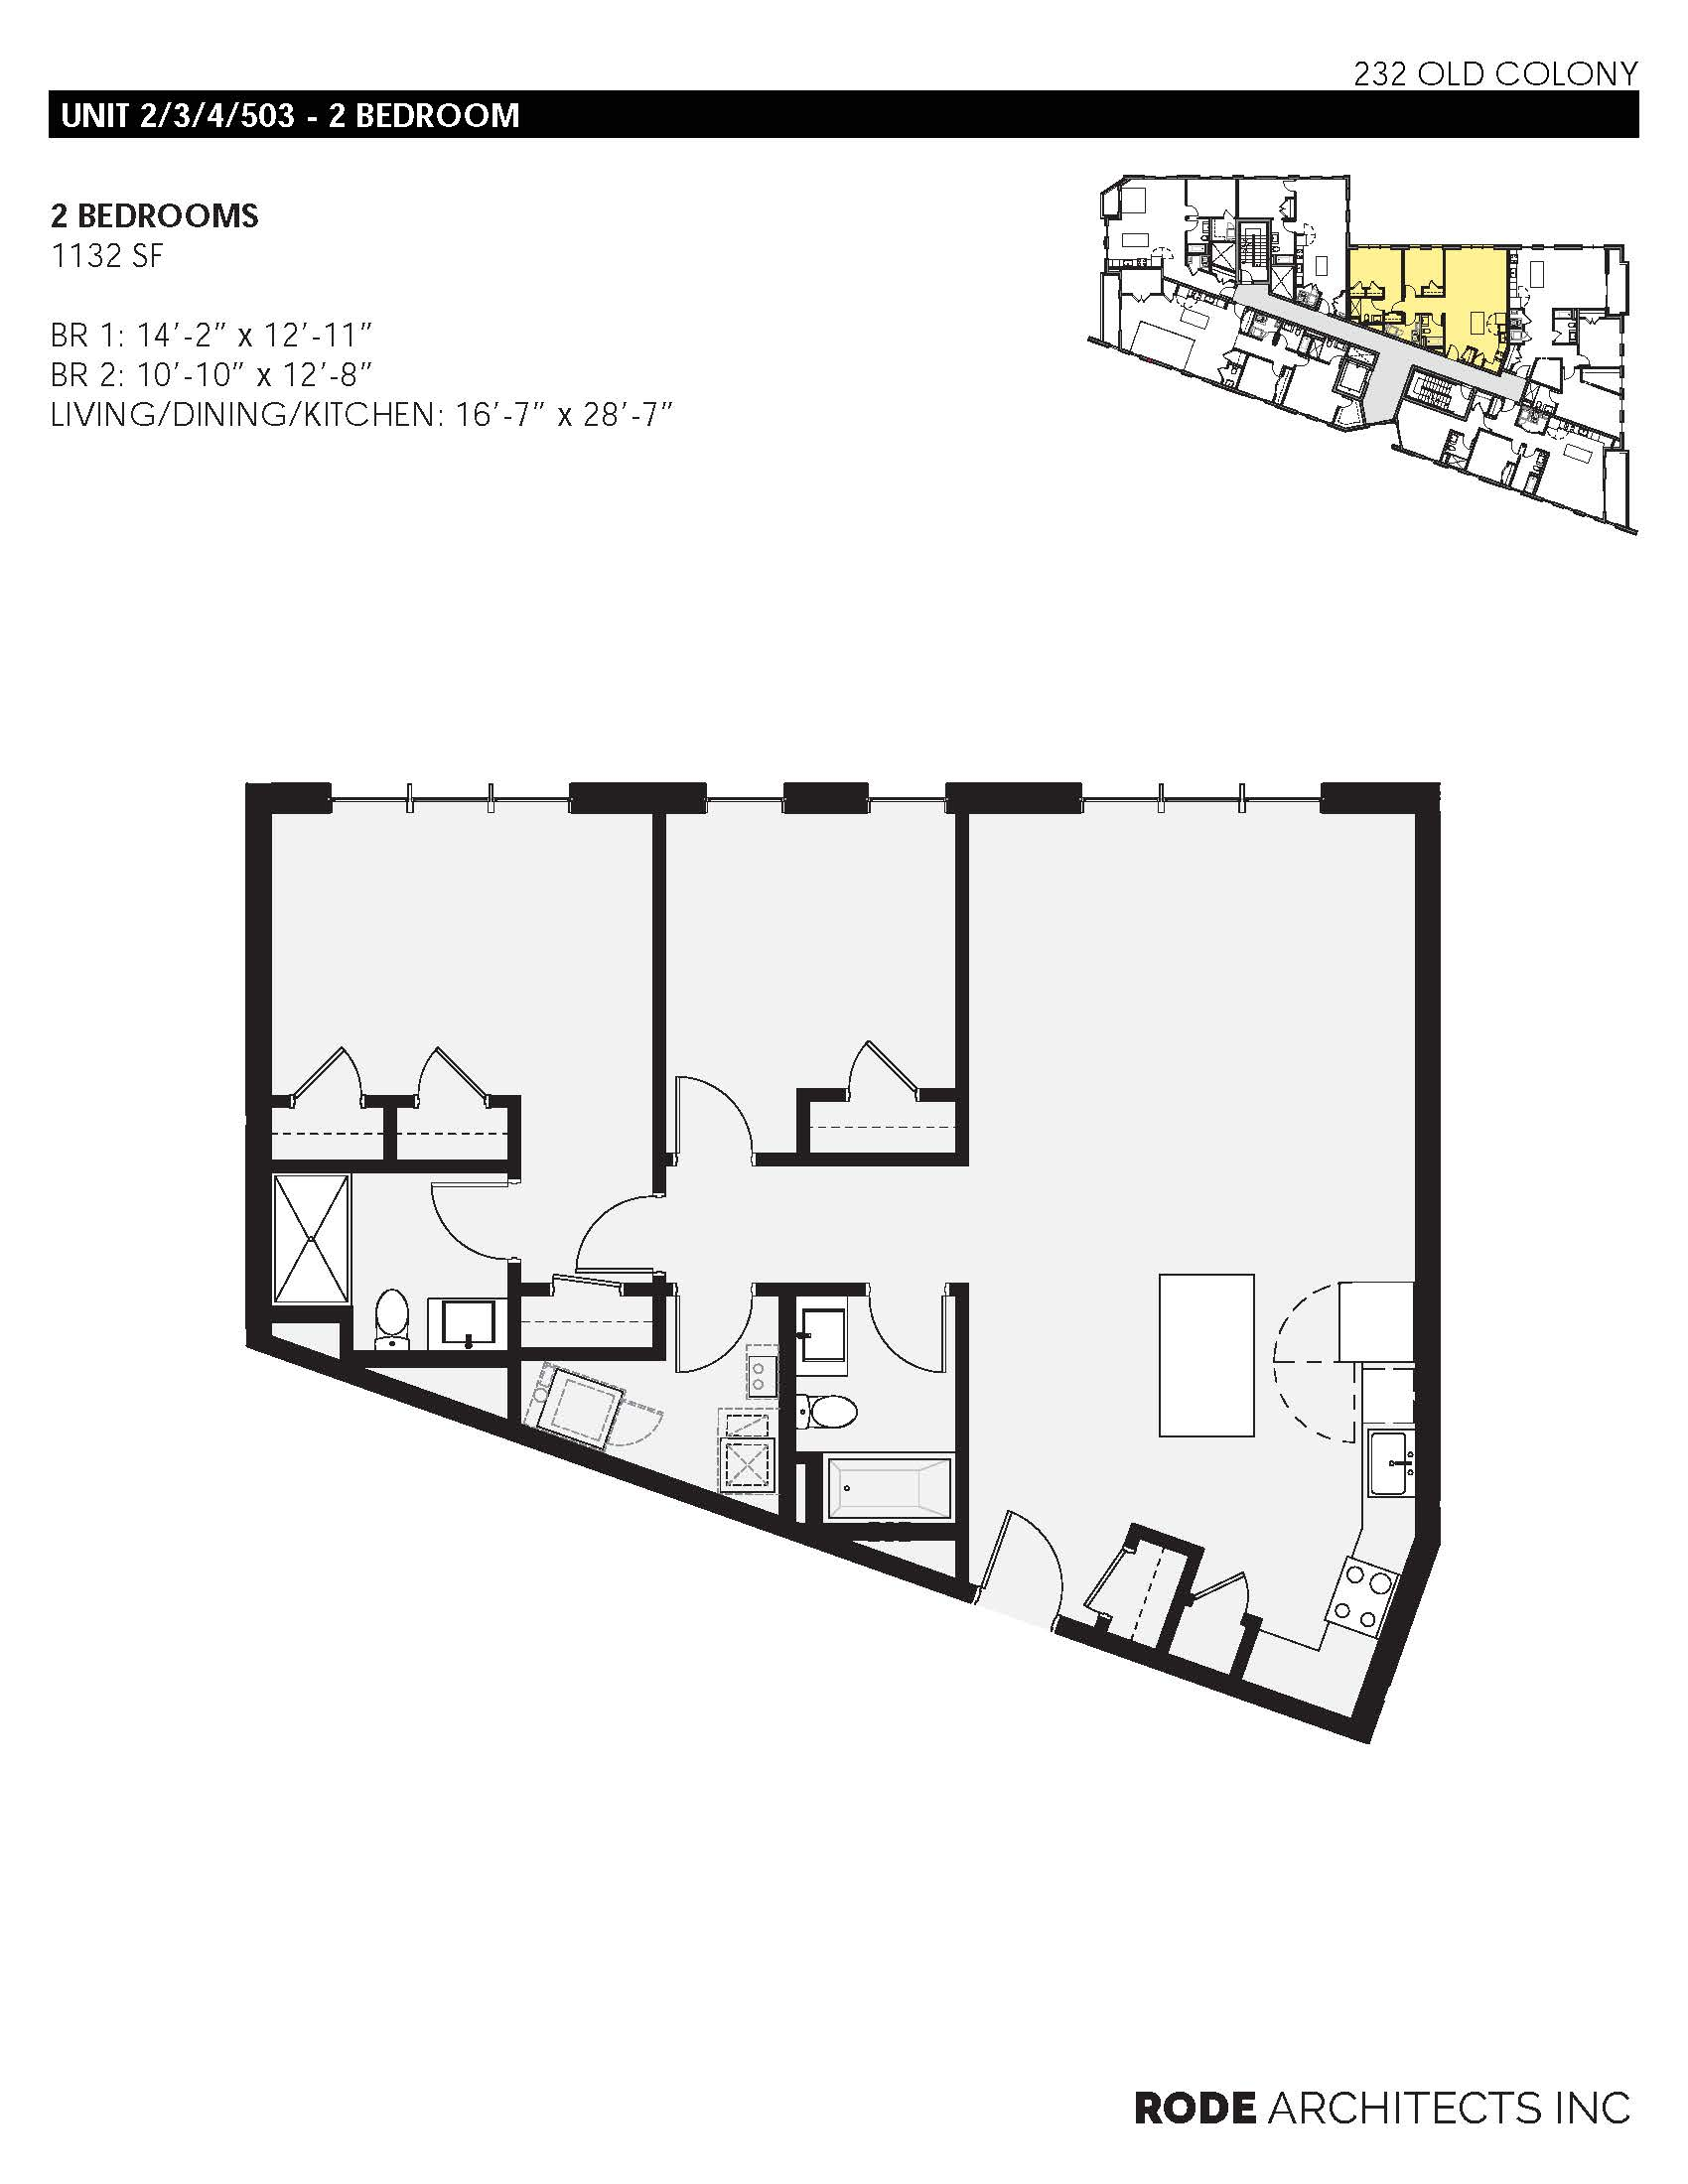 232 Old Colony - Marketing Plans (1)_Page_3.jpg